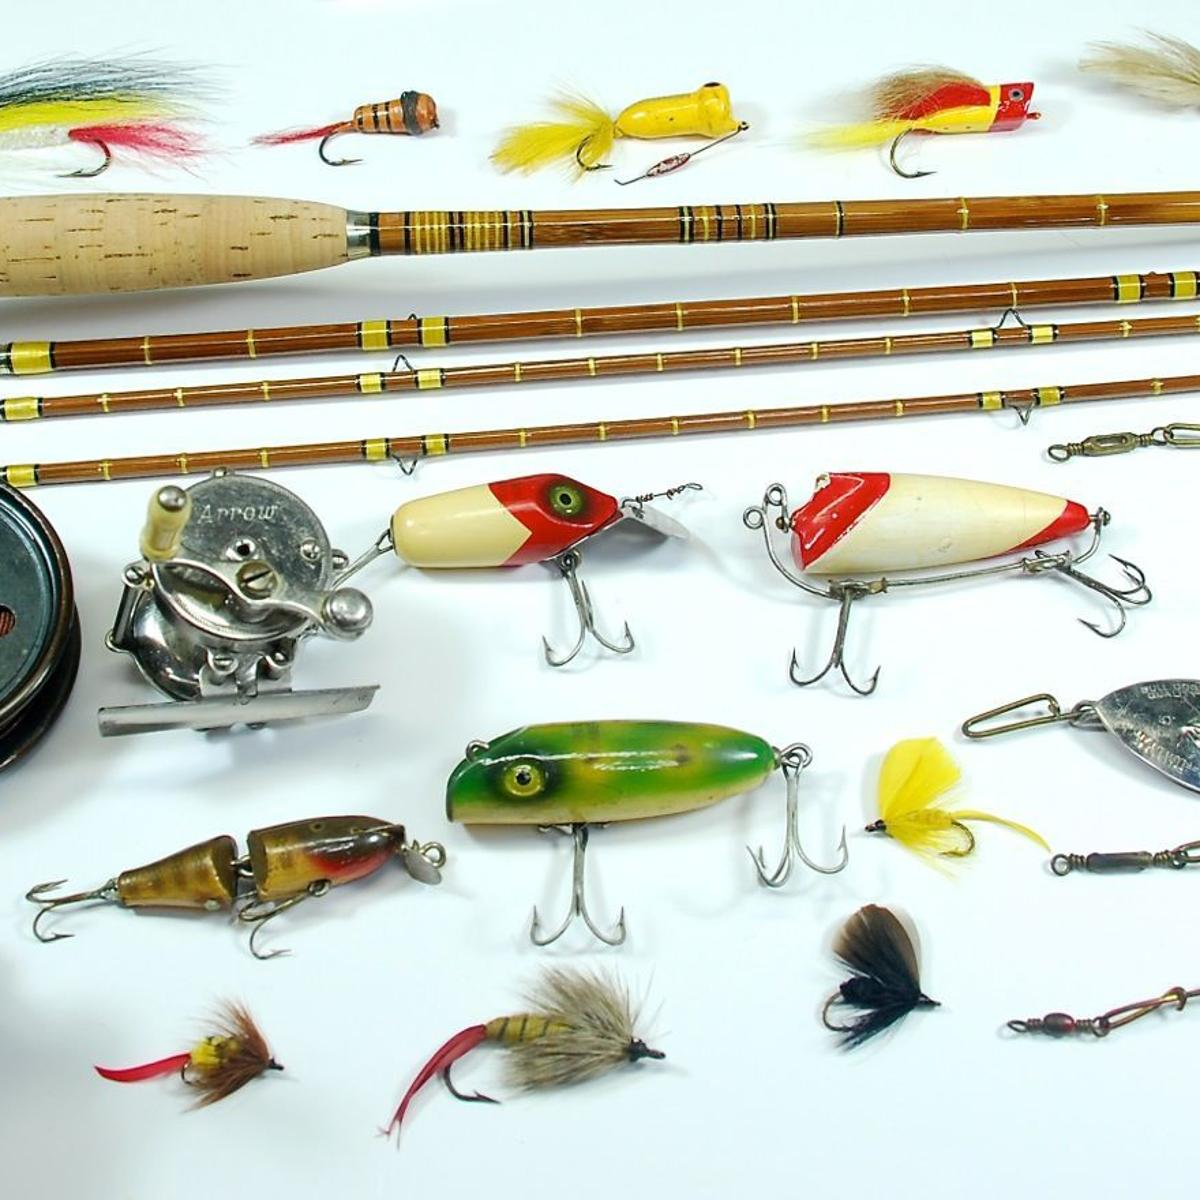 MYHRE: Why not begin collecting vintage fishing tackle? | Outdoors